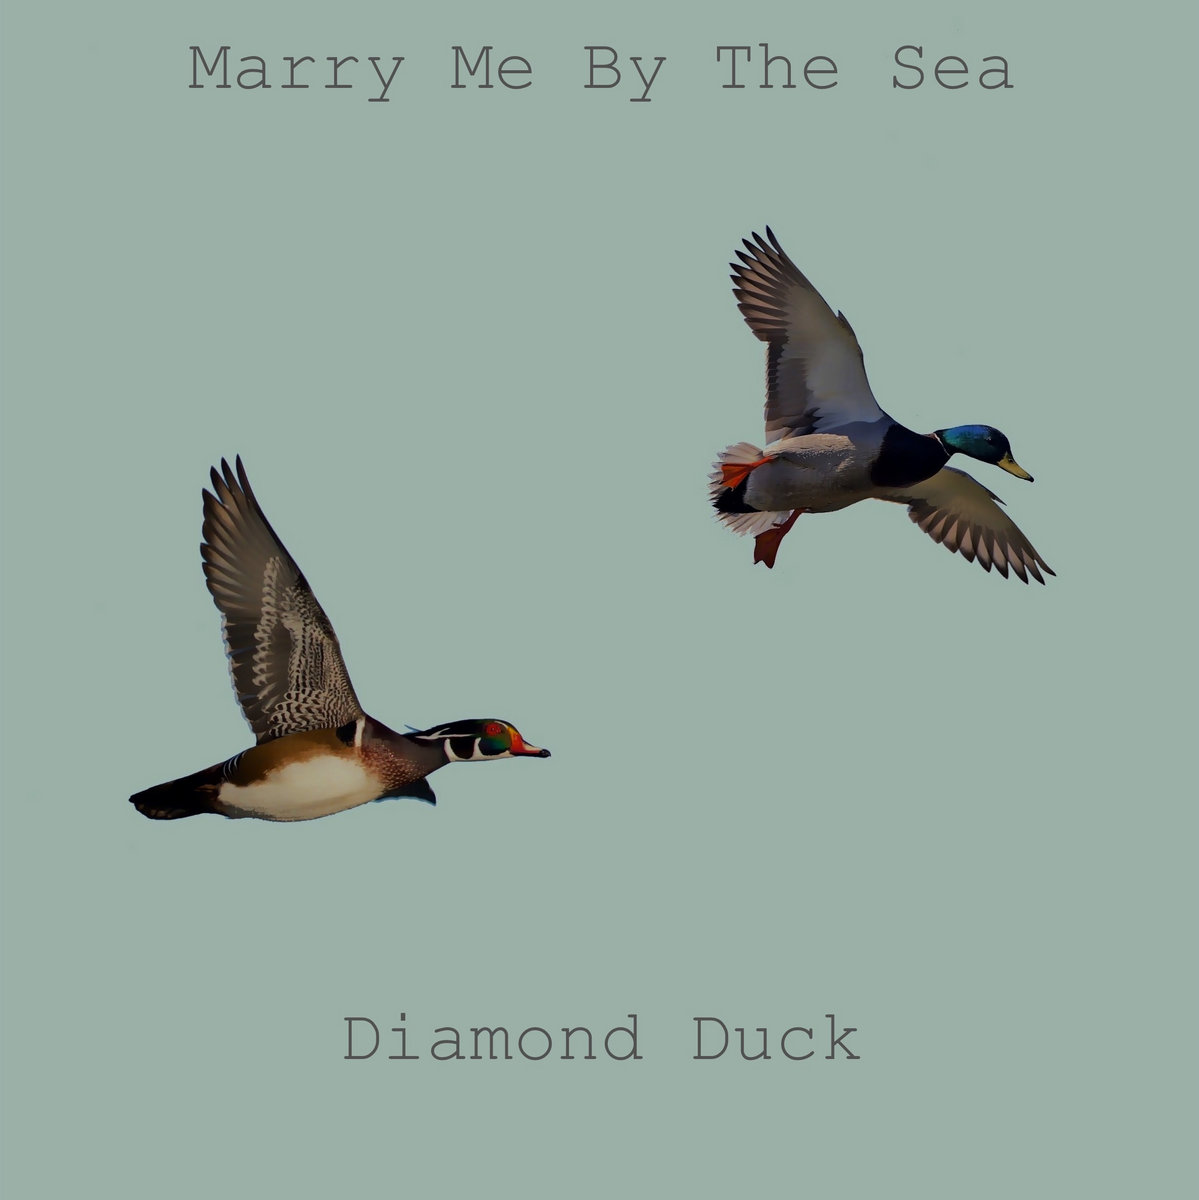 marry me by the sea diamond duck